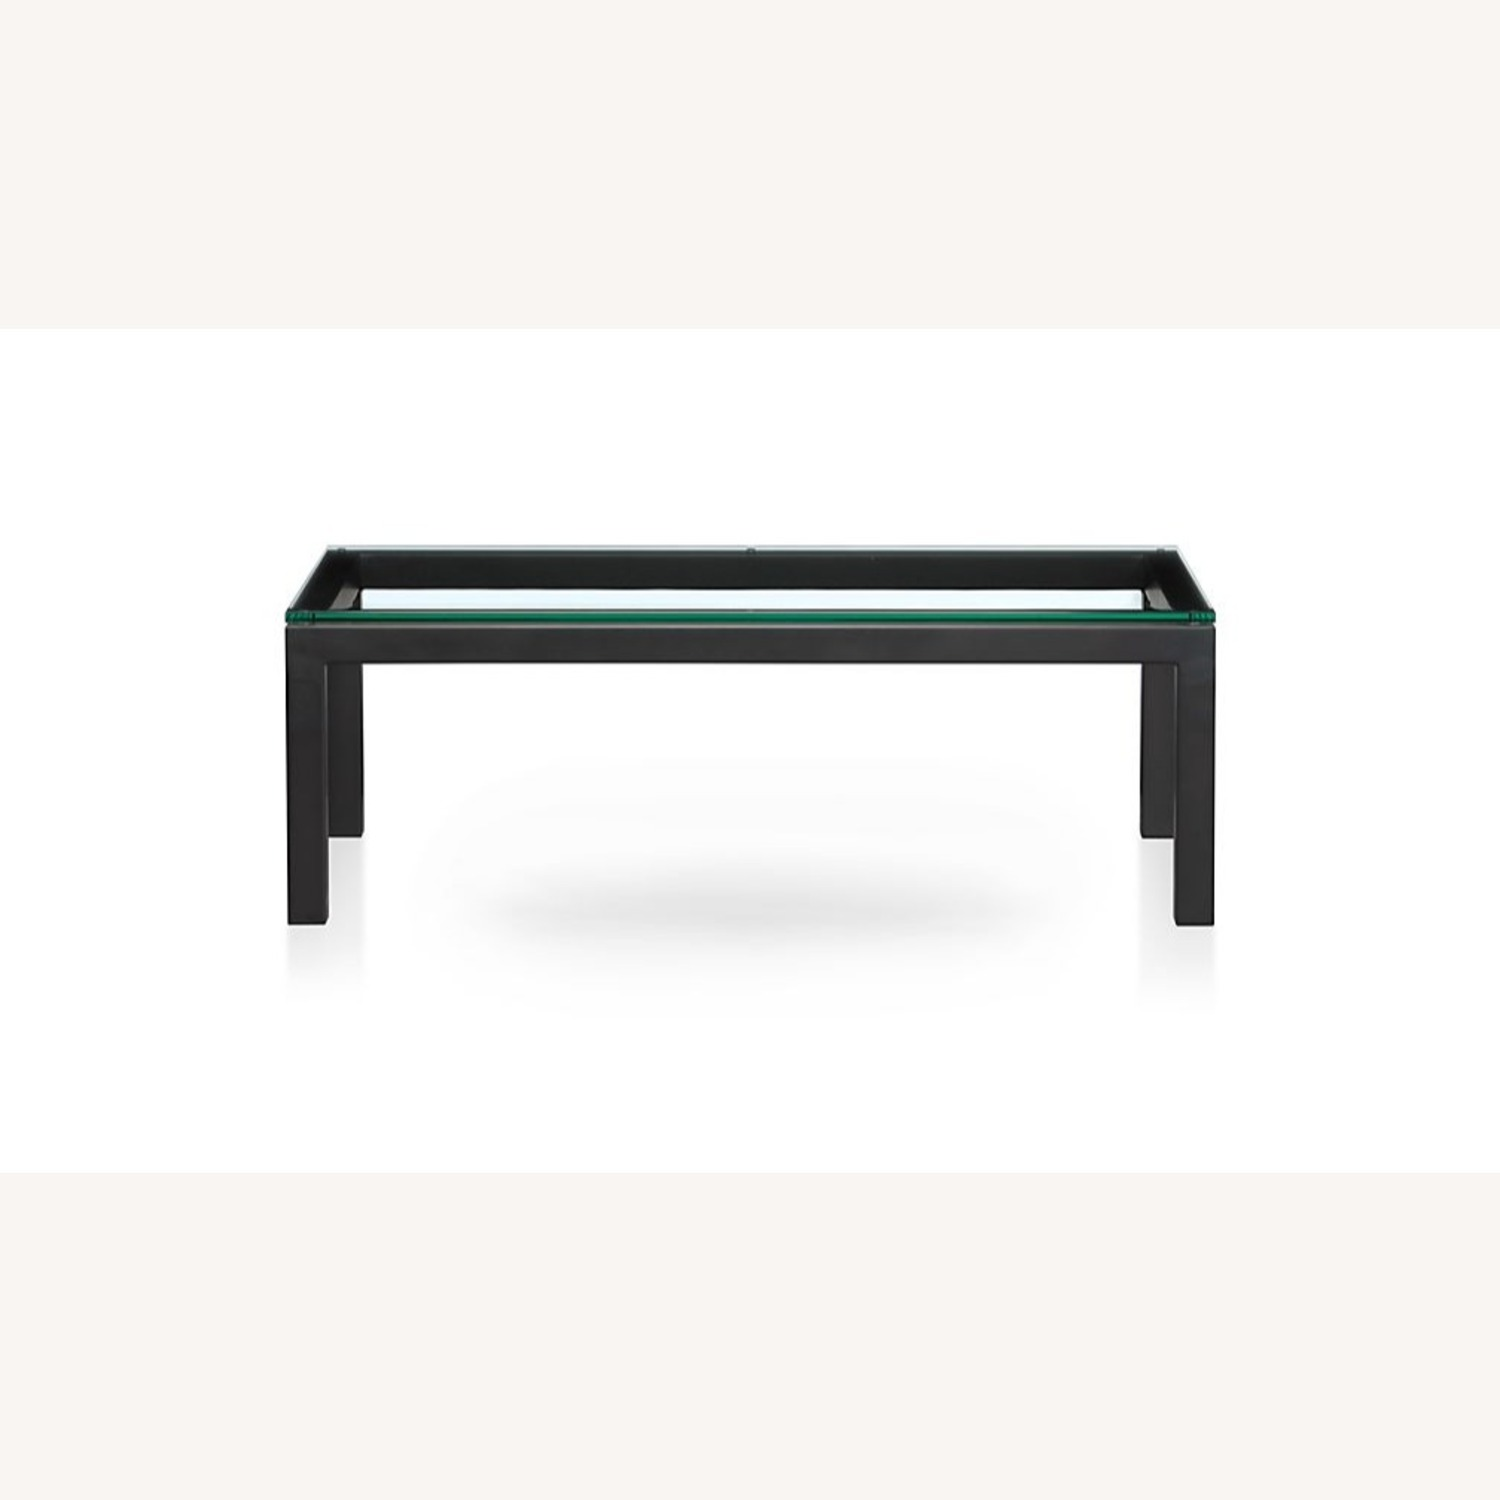 Crate and Barrel Glass Rectangular Coffee Table - image-1